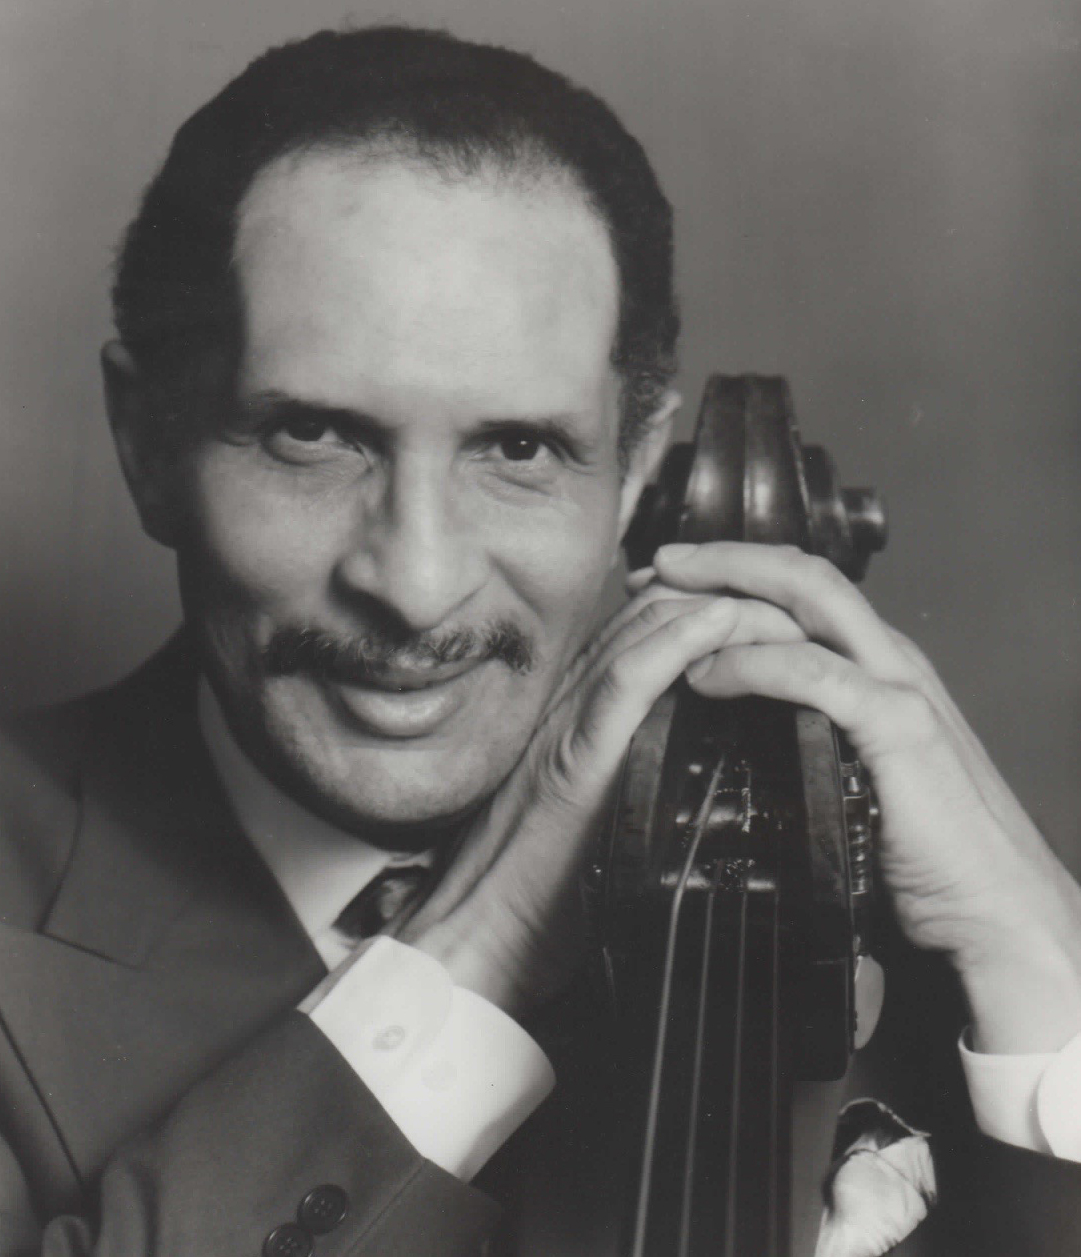 Dr. Larry Ridley, the Rutgers University professor who founded the Jazz Artists in the Schools Program